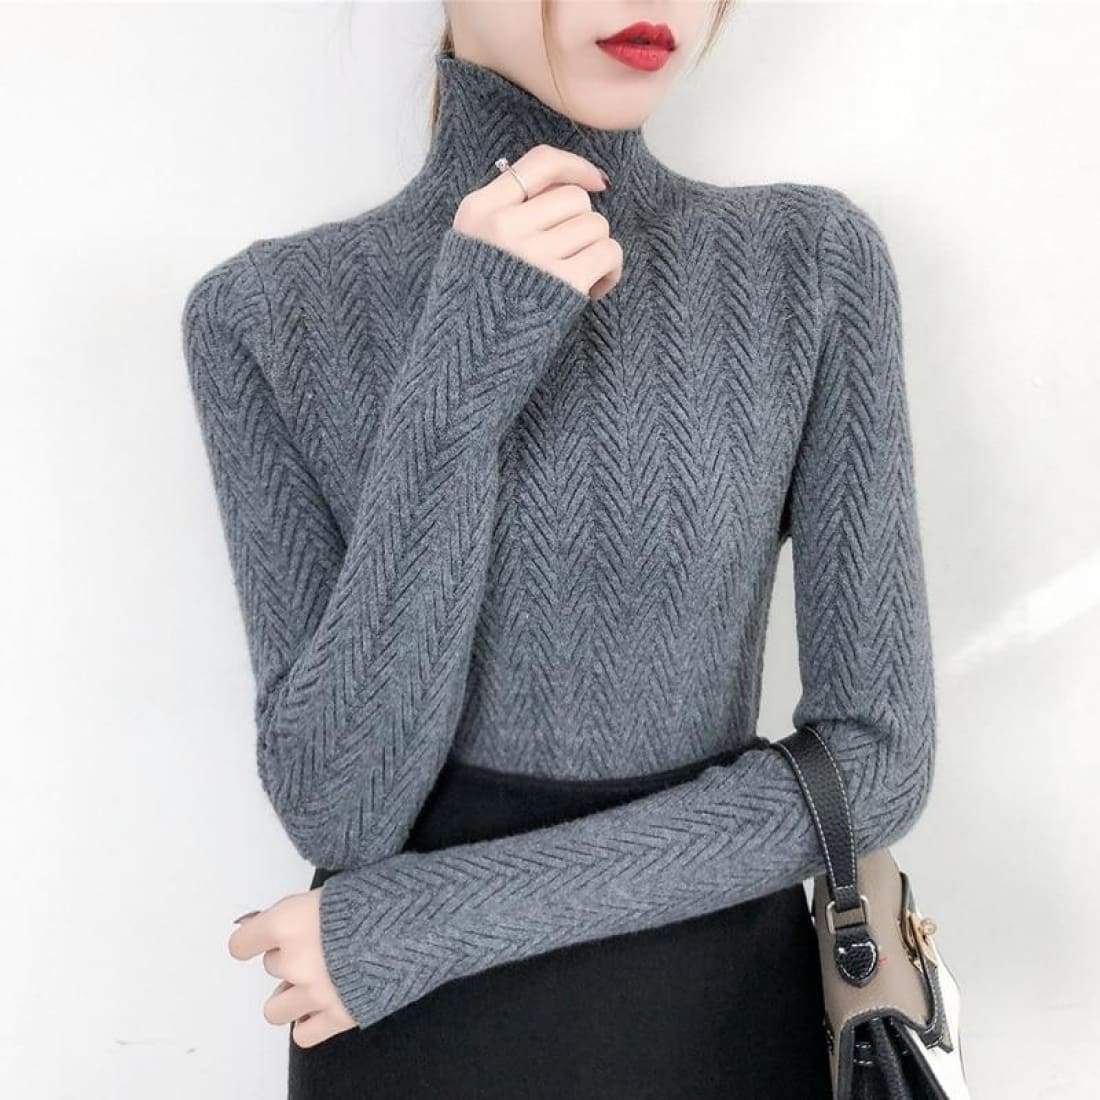 Fine knitted sweater with stand-up collar - Gray / S